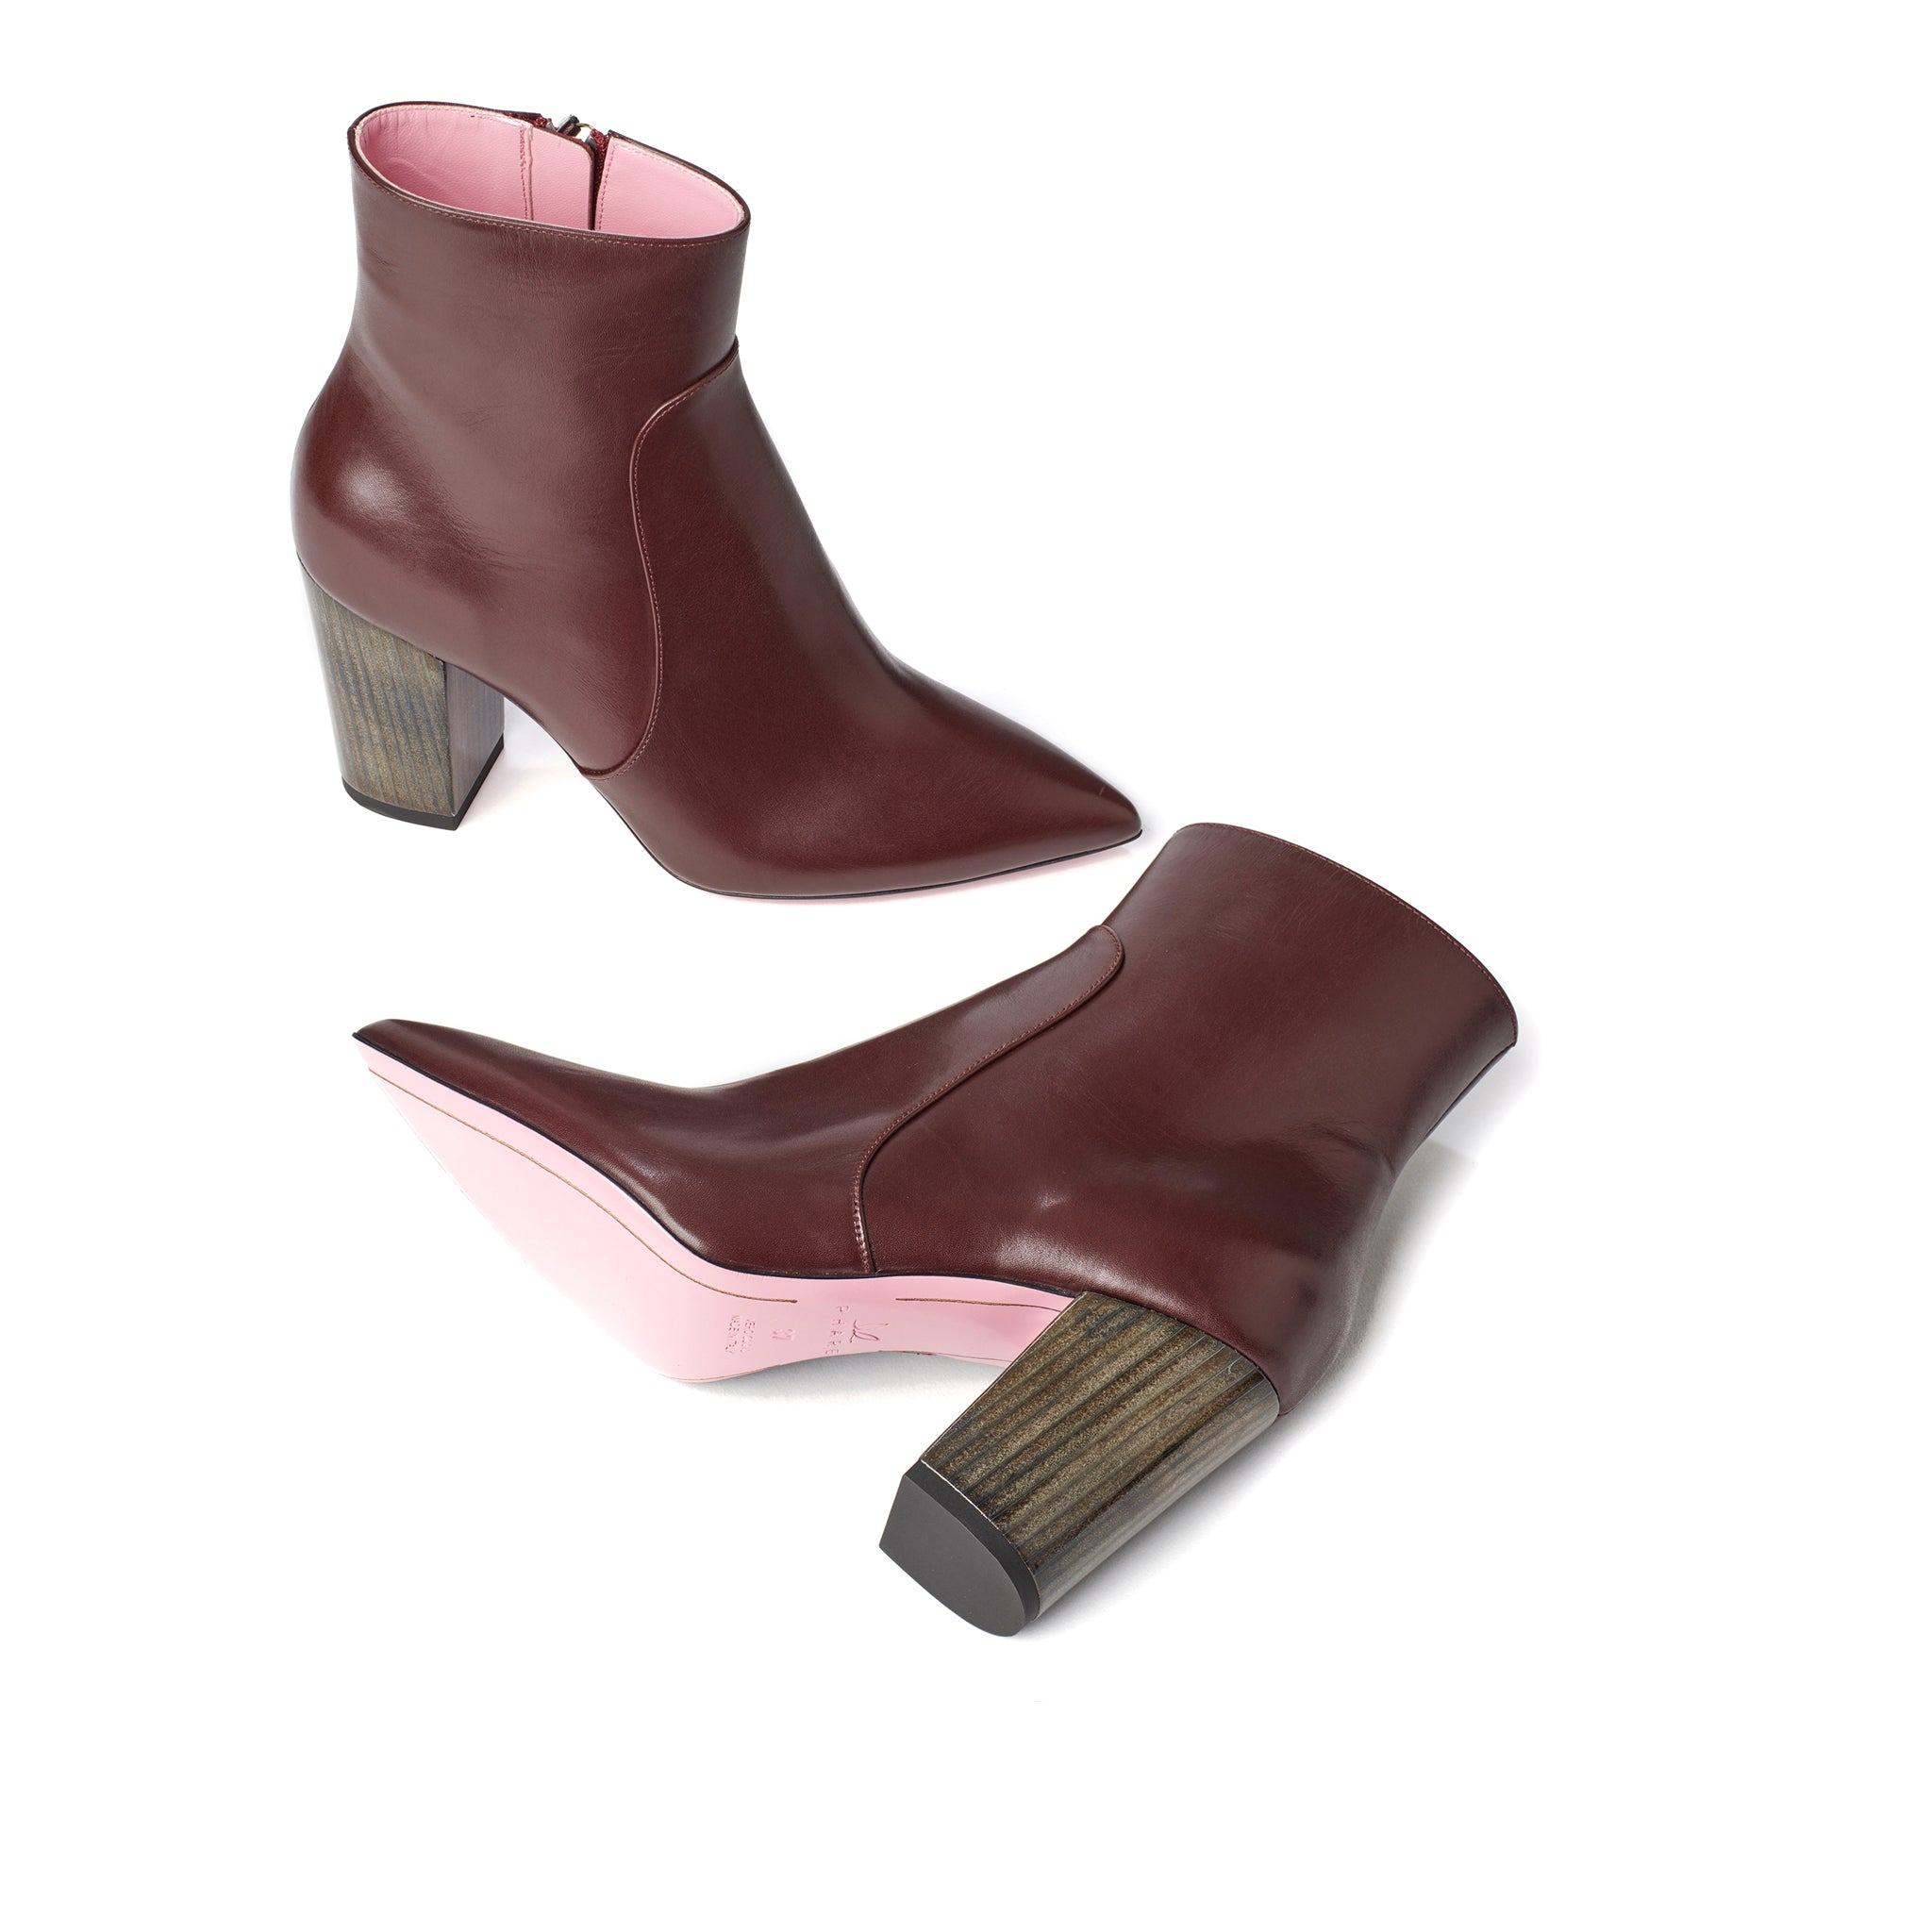 Phare Pointed block heel boot in bordeaux leather made in Italy sole view